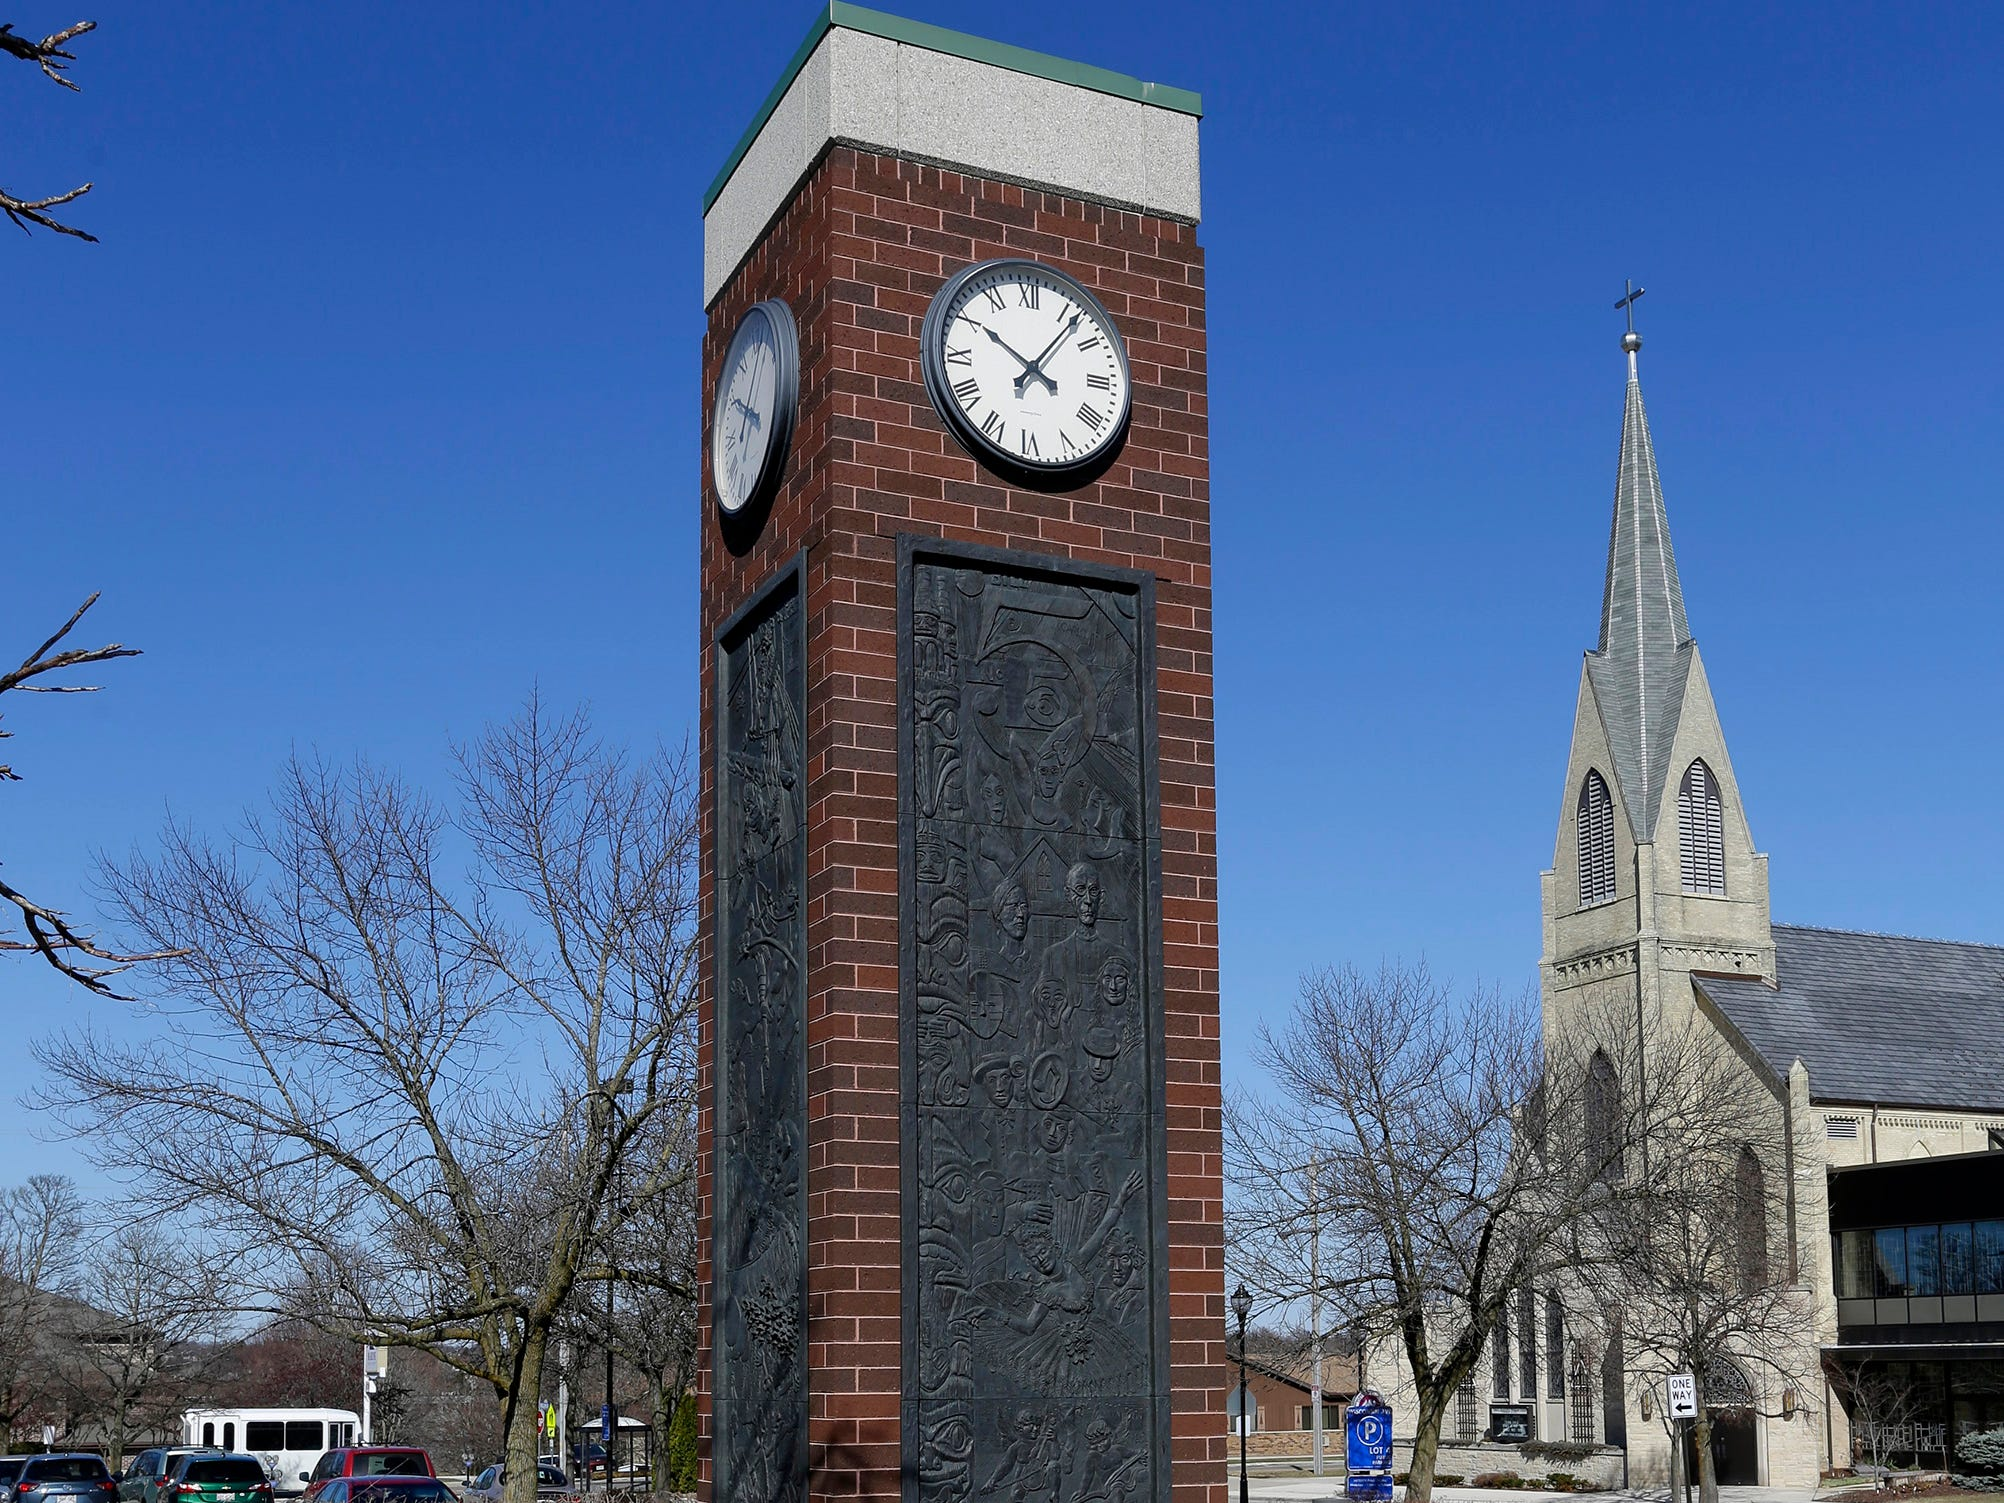 A east view of the clock tower at Mead Public Library, Tuesday, April 9, 2019, in Sheboygan, Wis.